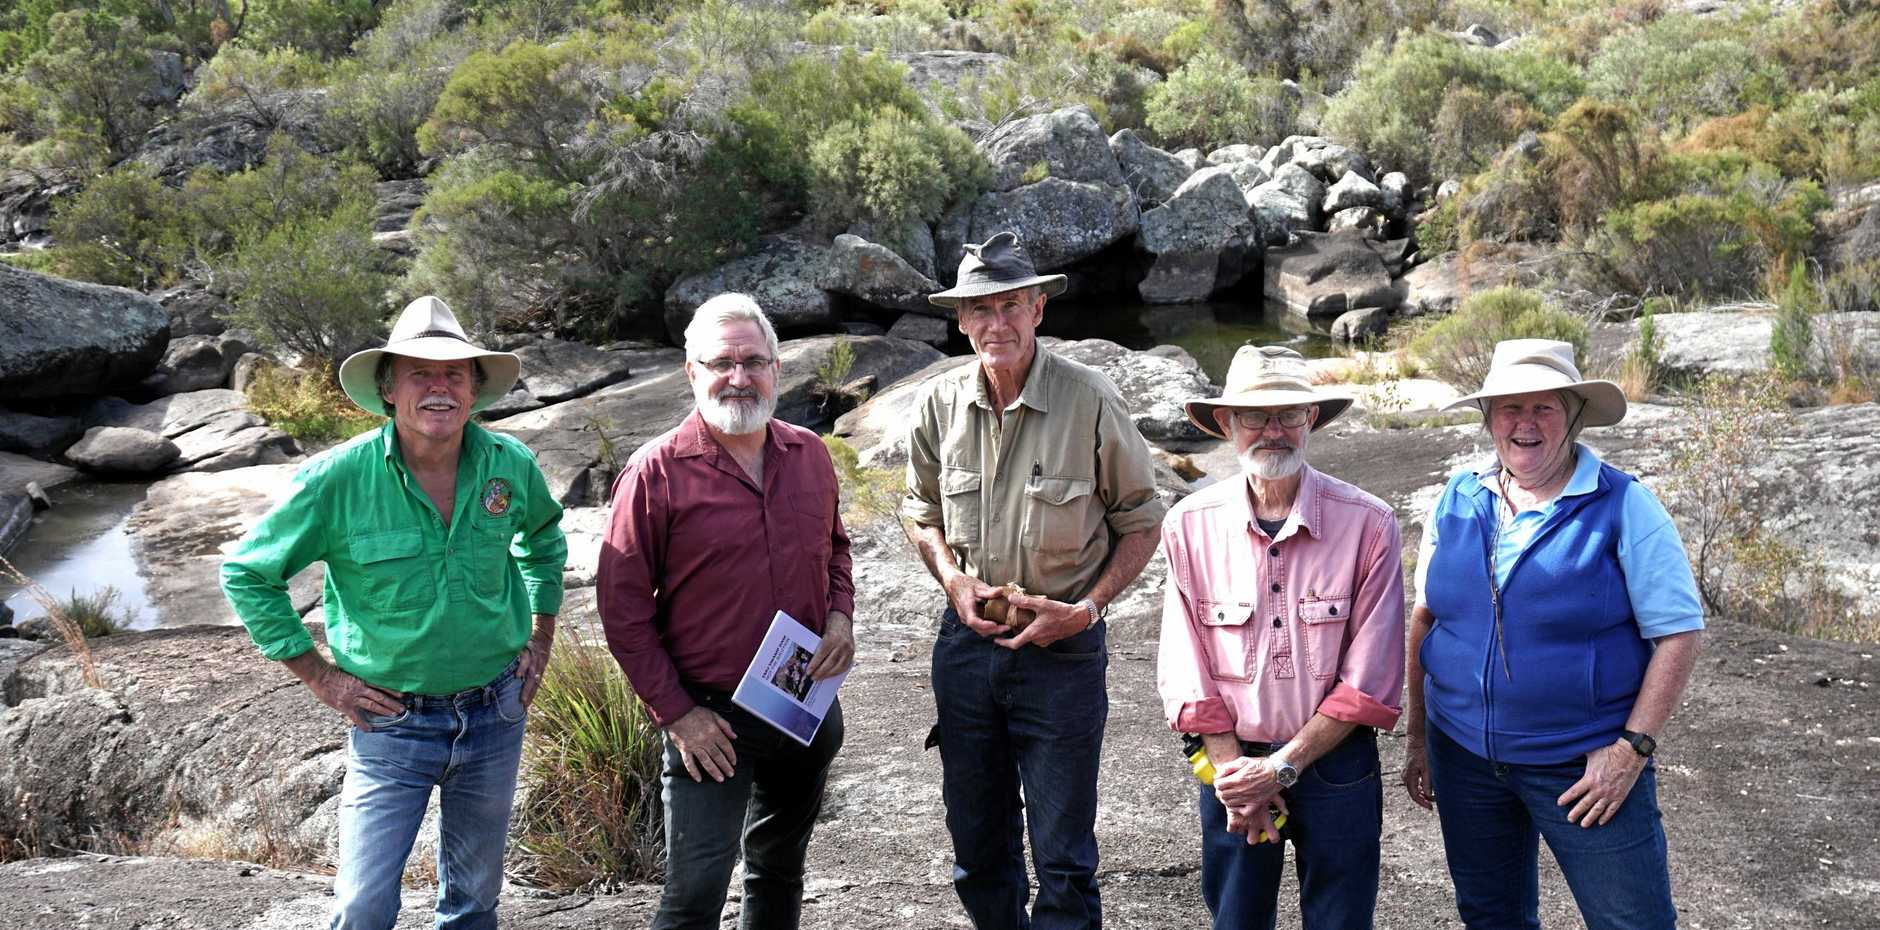 DAM COUNTER: Senator Andrew Bartlett (second from left) with Rick Humphries, Rob Simcocks, Chris Gray and Liz Bourne at the proposed Emu Swamp Dam site.